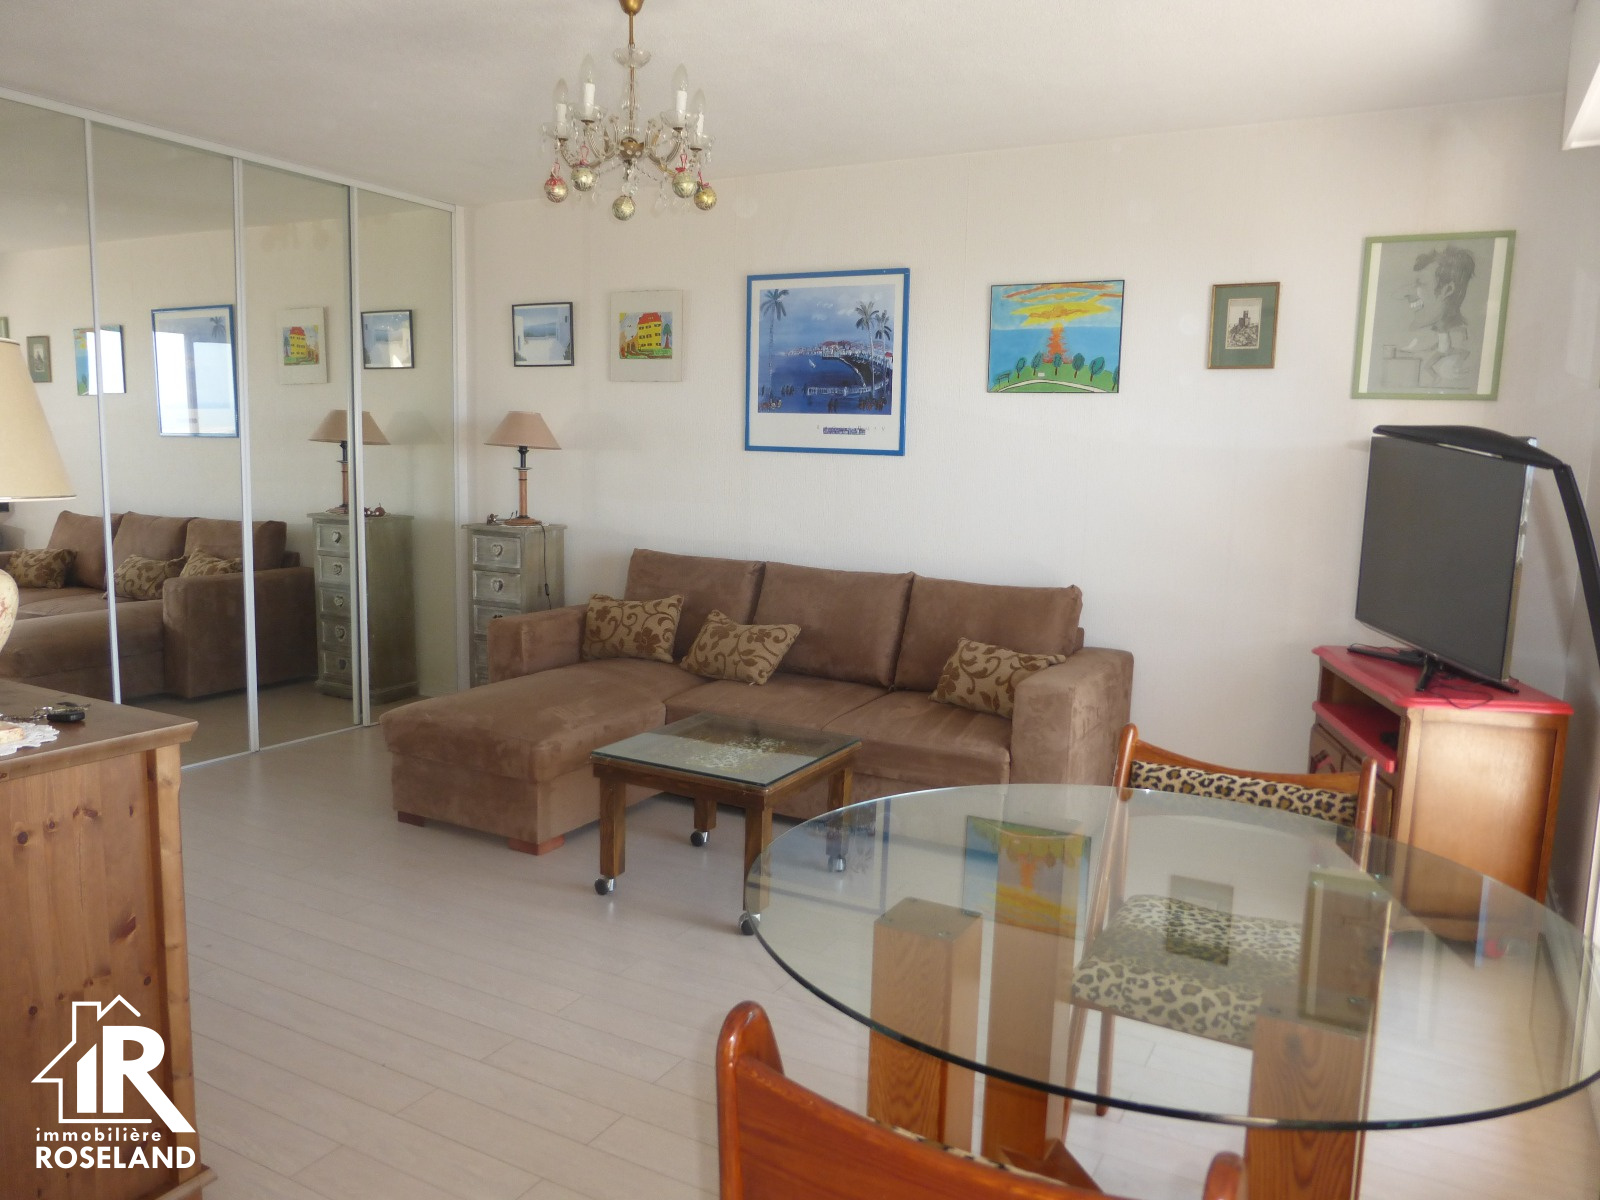 Location maison et appartement nice fabron port nice ouest immobilier nice - Location studio meuble nice ouest ...